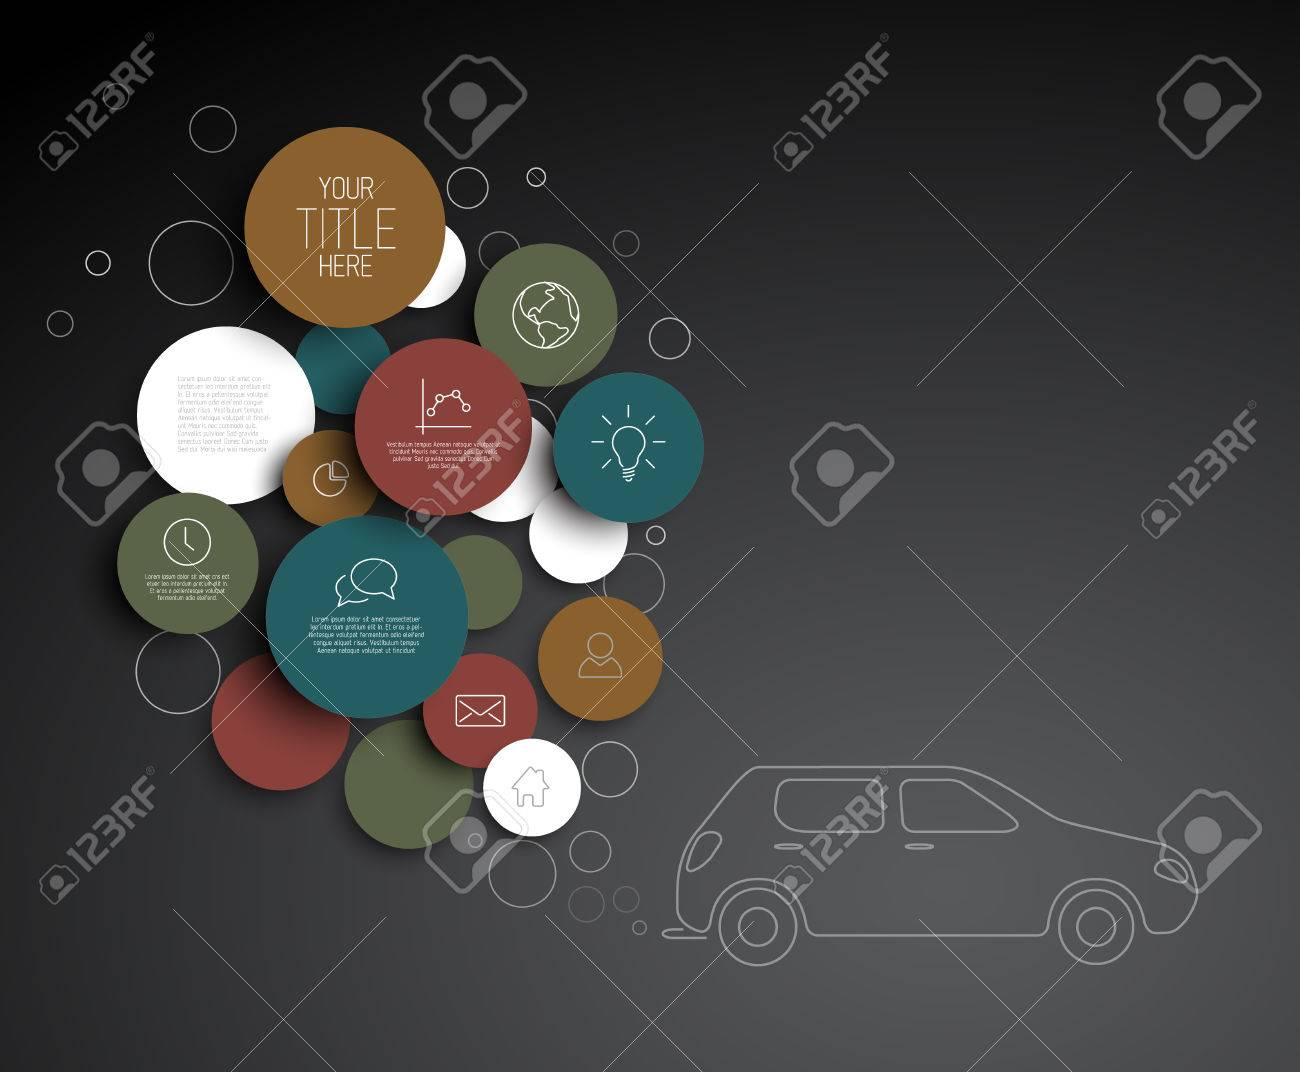 Vector abstract circles pollution illustration / infographic template with place for your content - 29265511